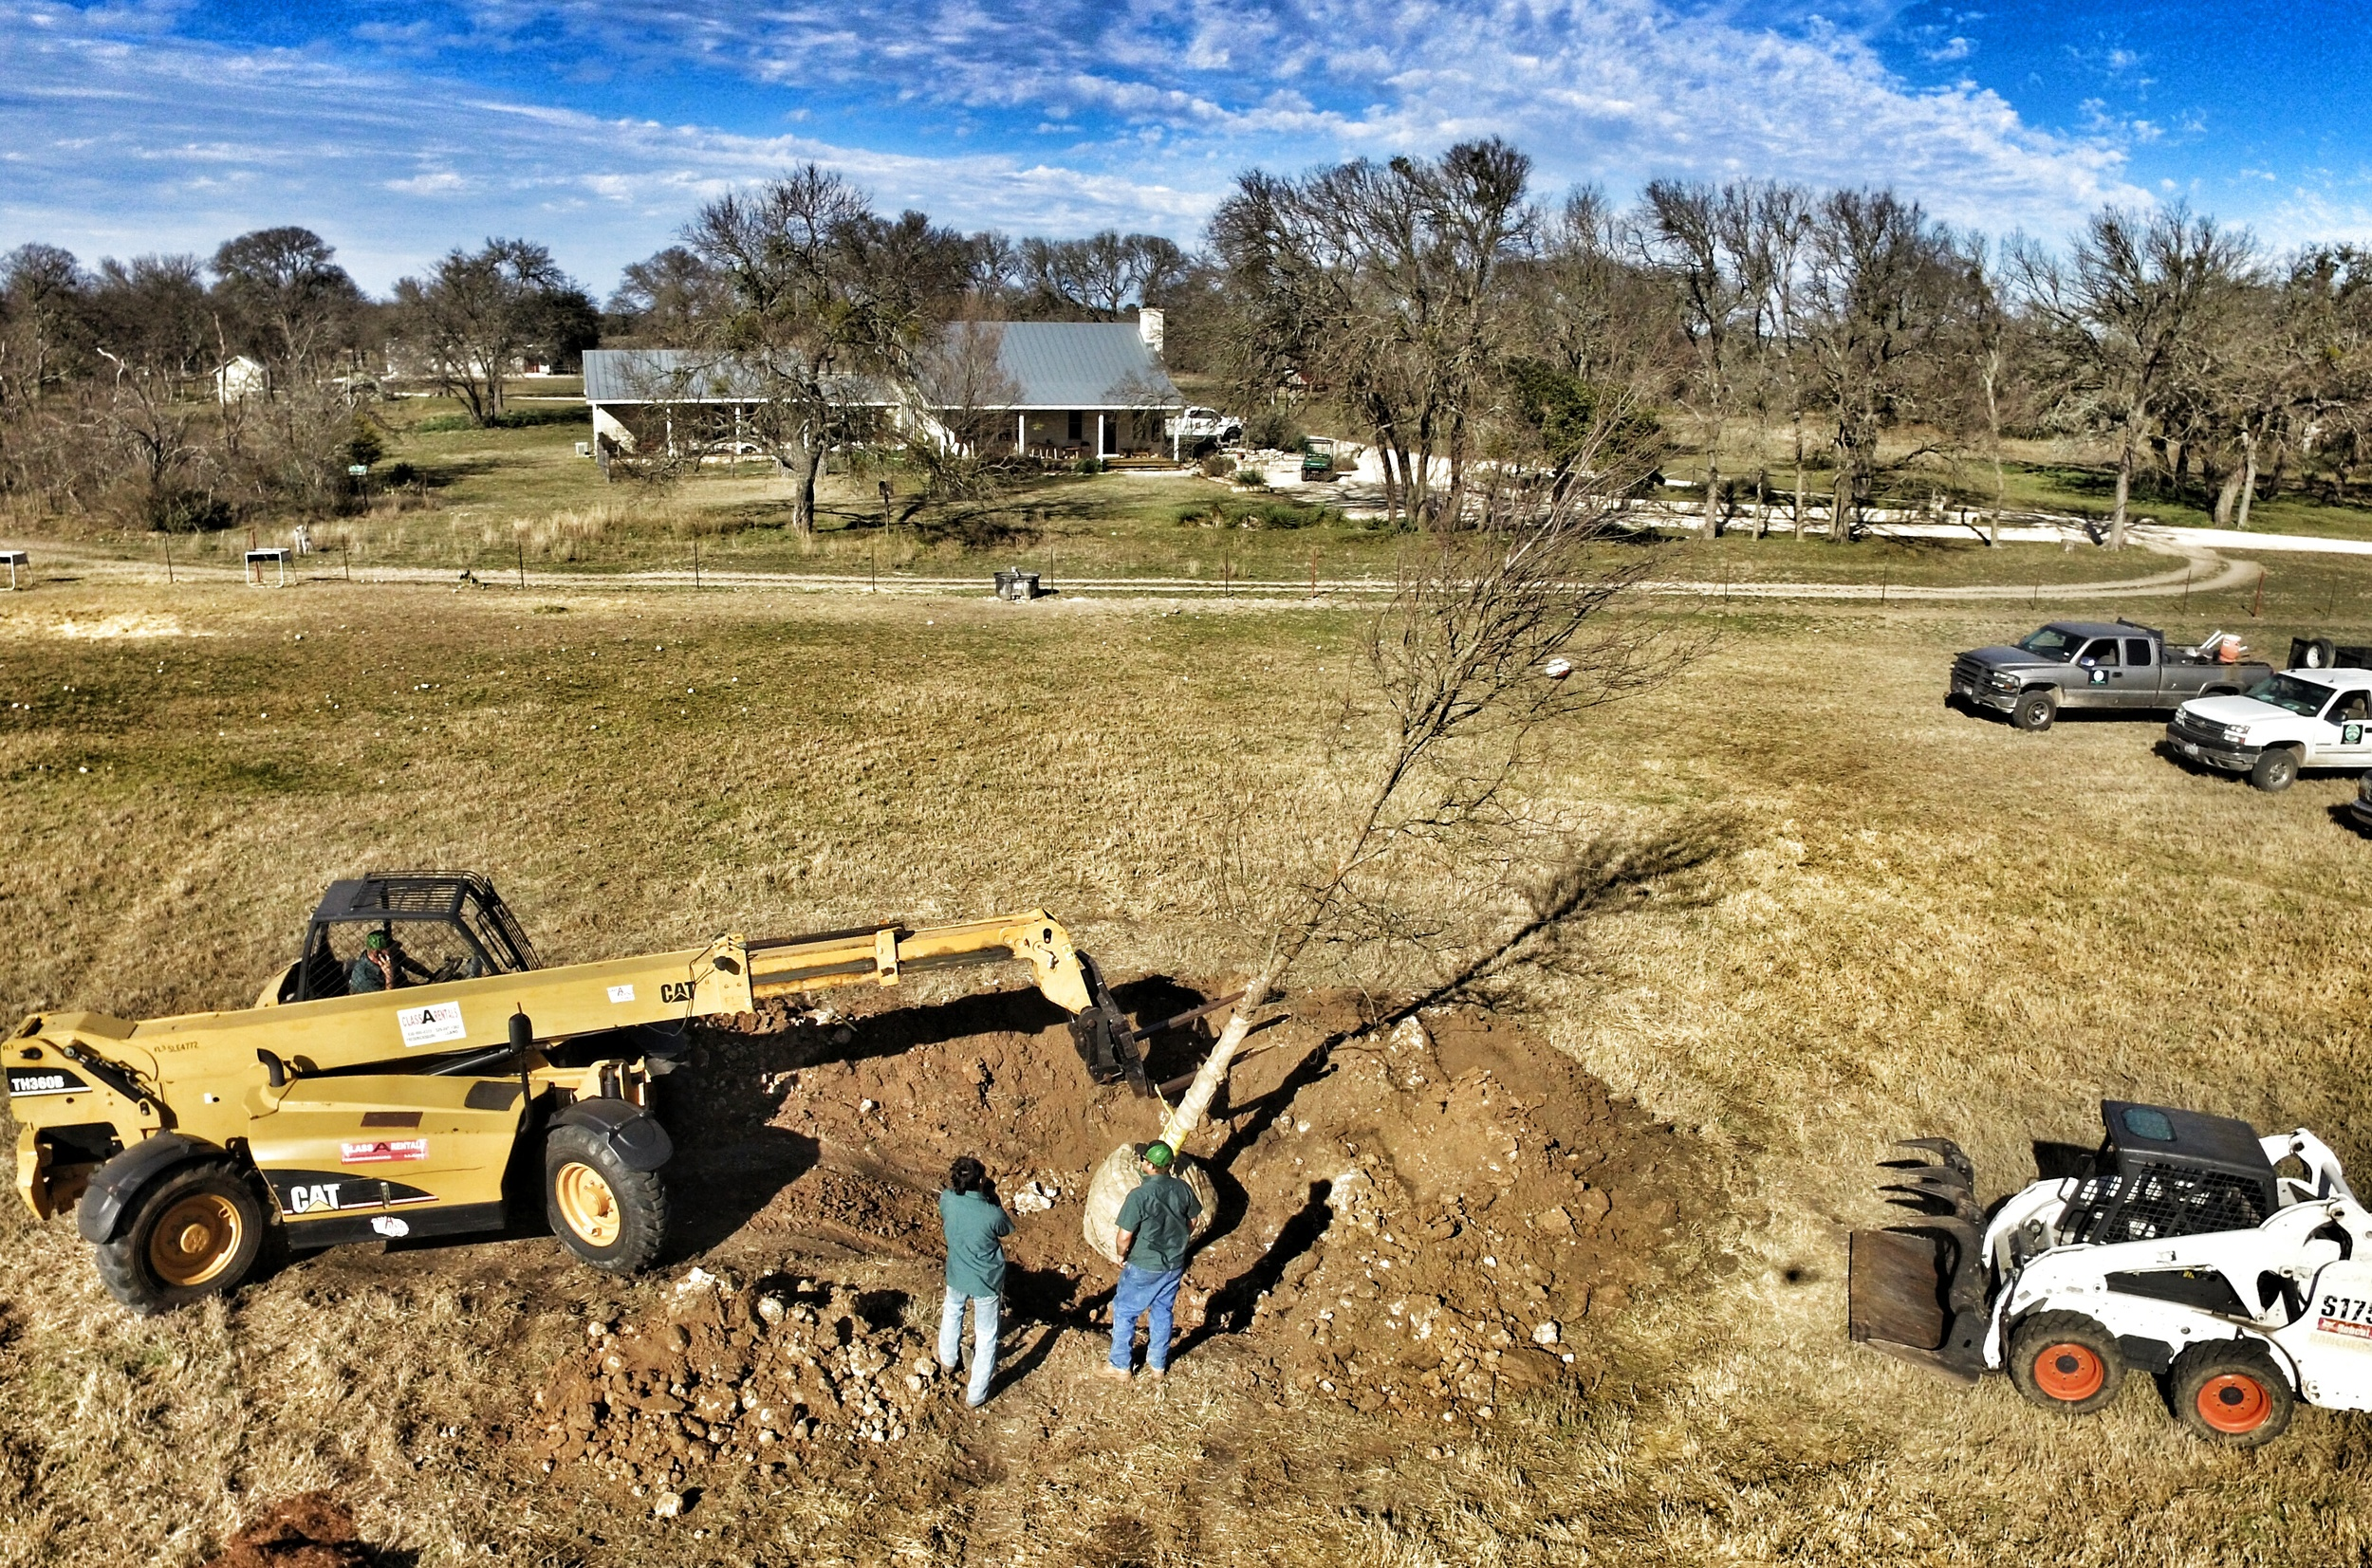 Aerial photo of Superior Arborists planting a 25' tall Cedar Elm tree in Fredericksburg, Tx. The tree (dormant) weighed over 6,000 lbs and was part of a tree planting project for a horse training operation.